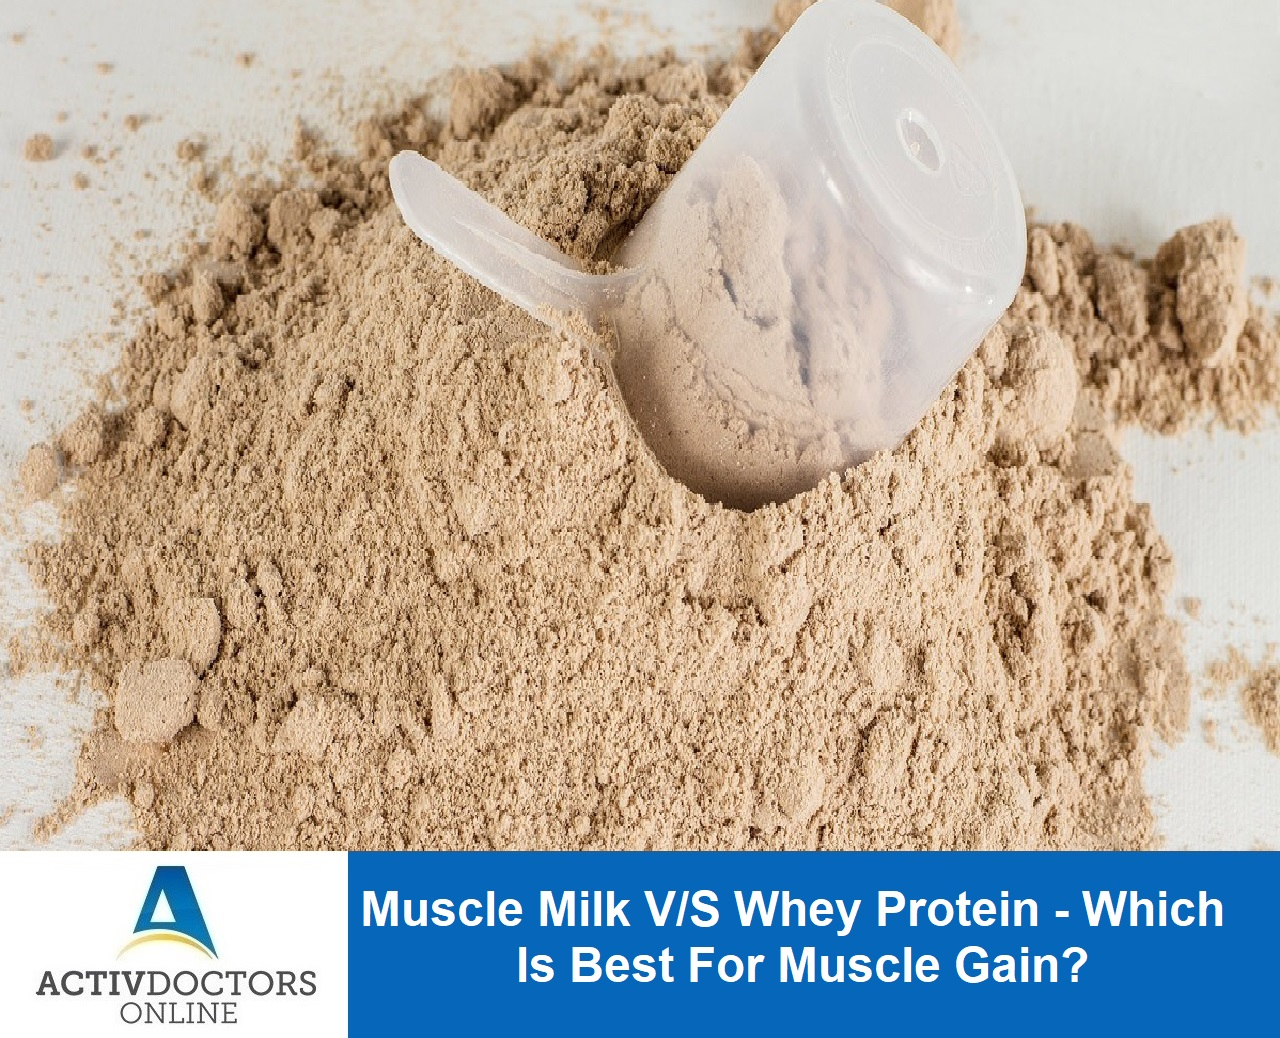 Muscle Milk V/S Whey Protein – Which Is Best For Muscle Gain???